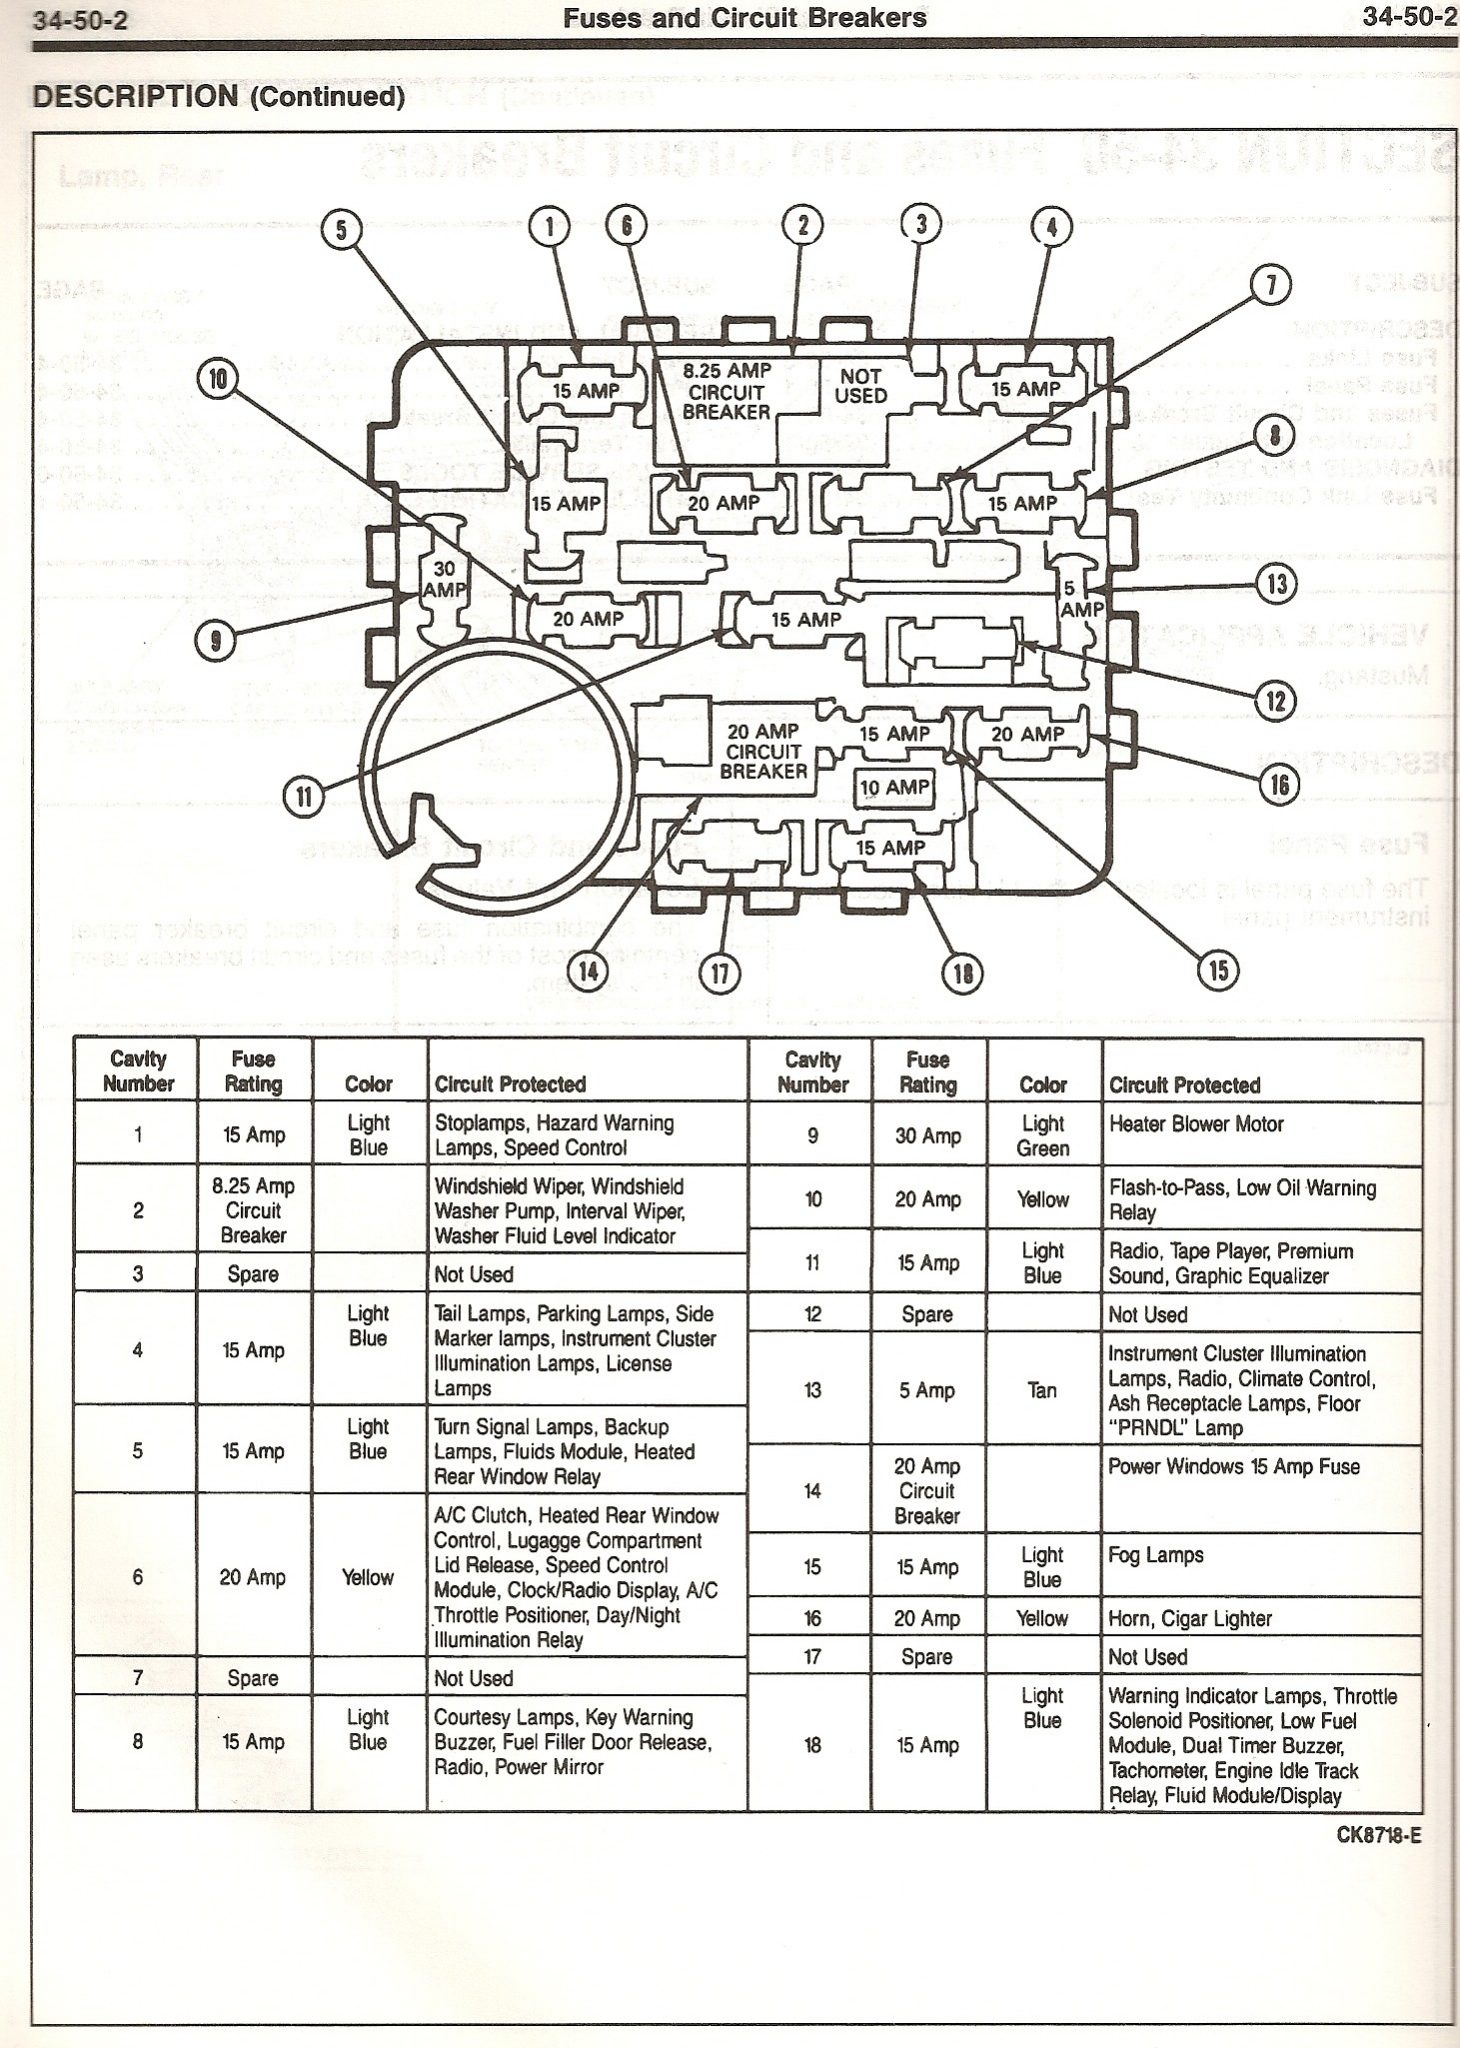 93 f150 5 0 fuse box diagram example electrical wiring diagram u2022 rh olkha co